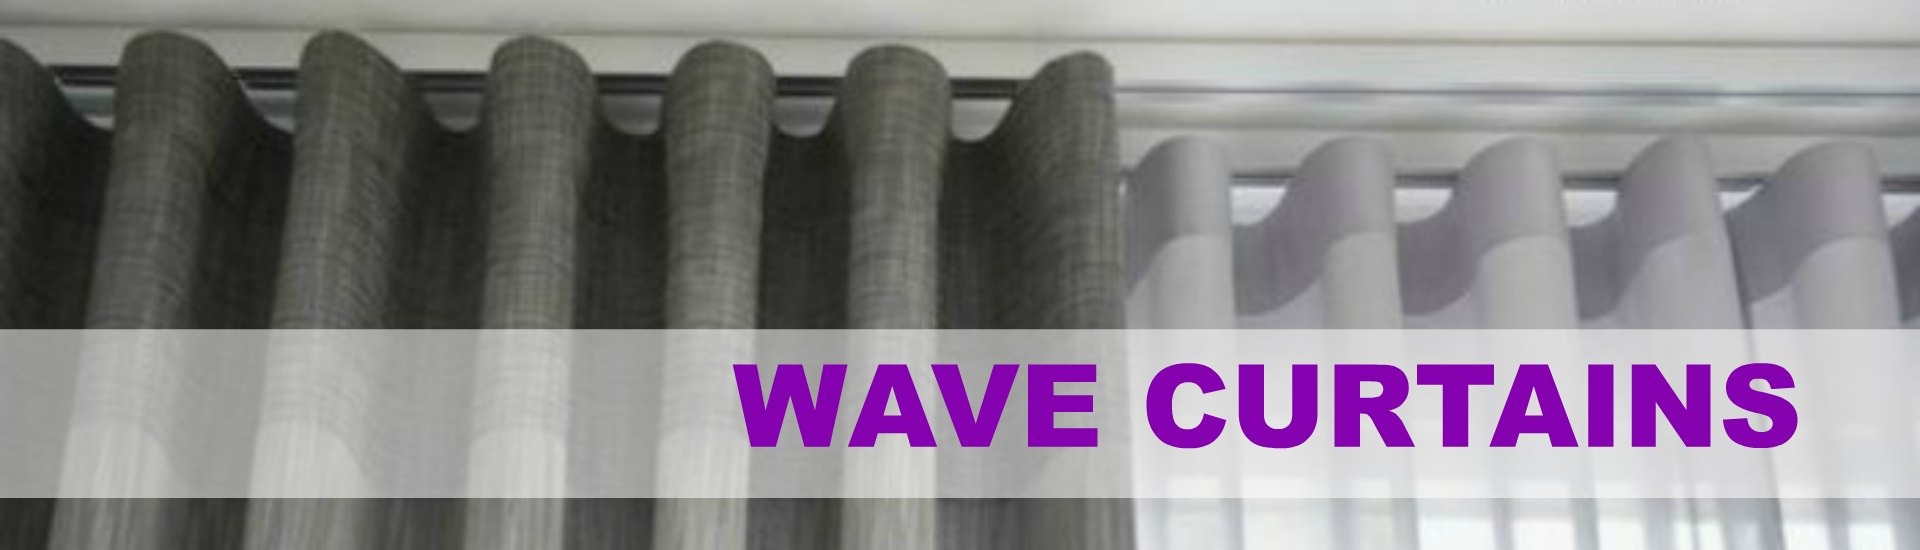 Wave curtain also known as Ripple curtain in a grey fabrc